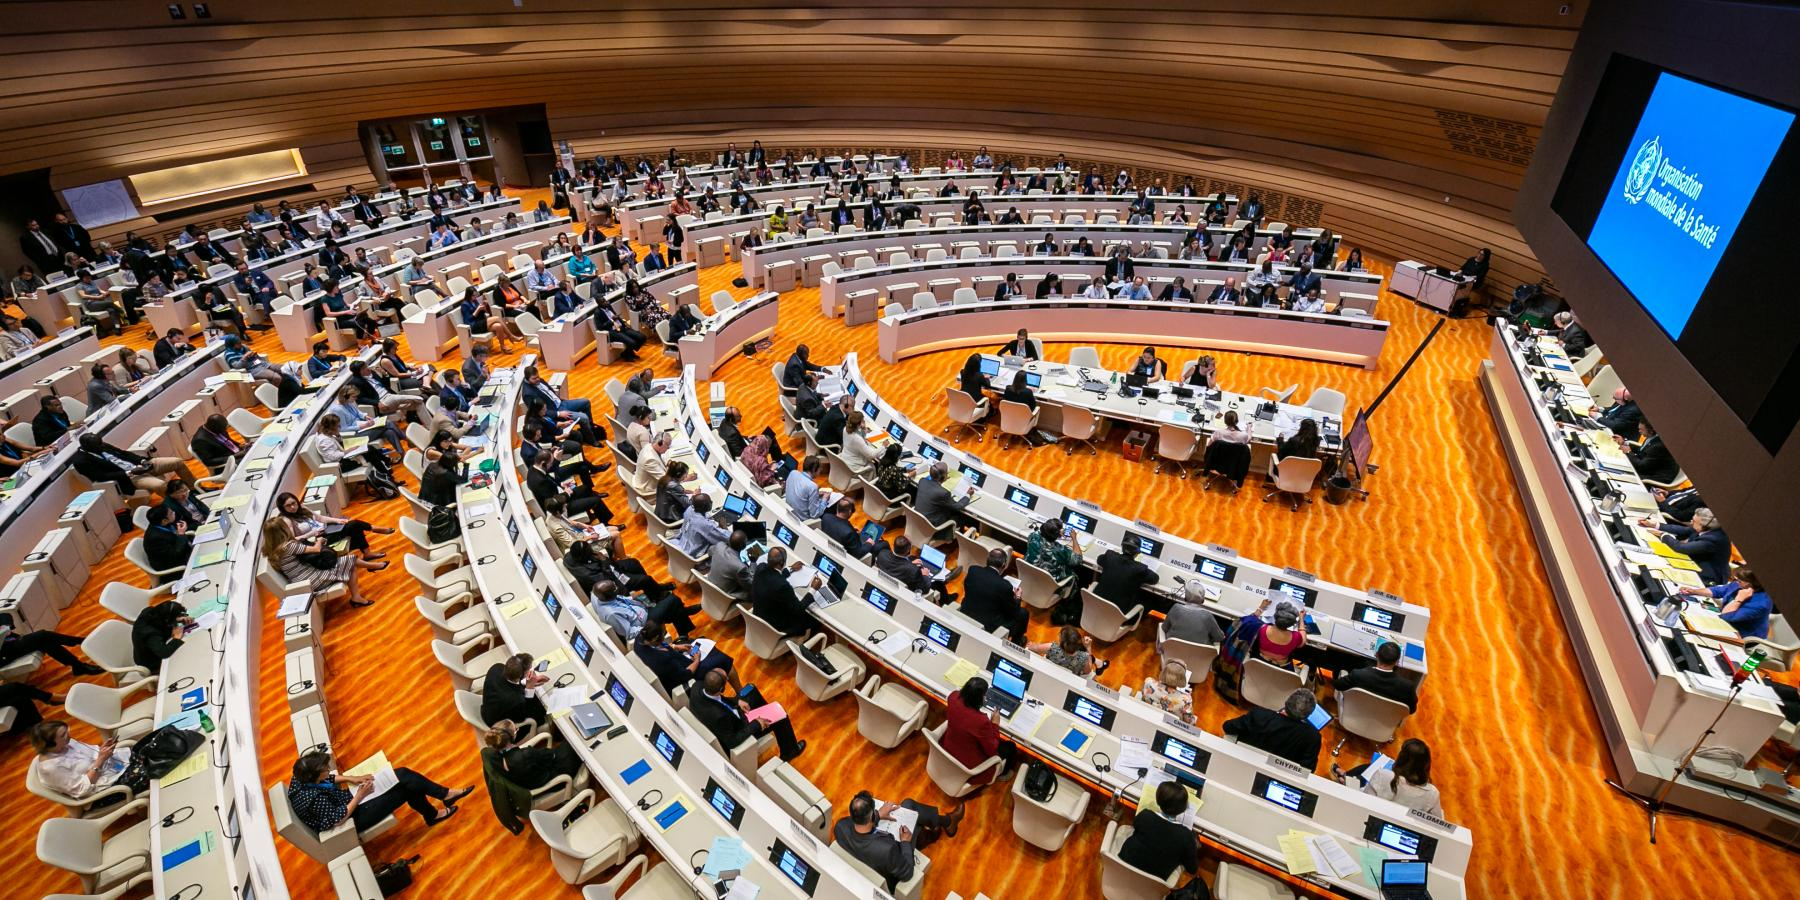 World Health Assembly in Geneva this week